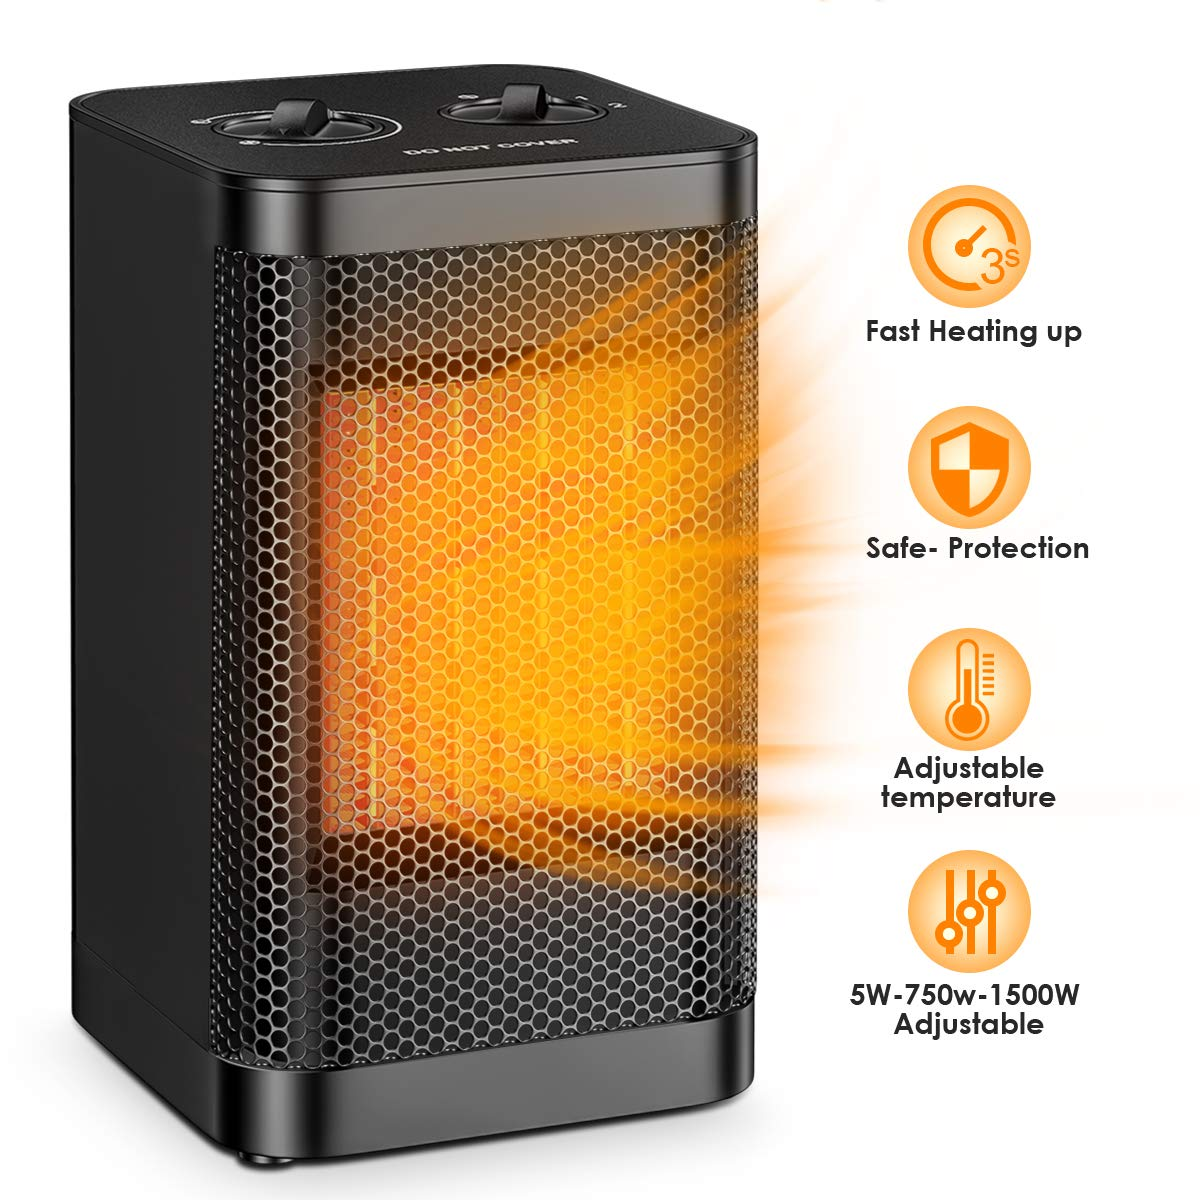 Portable Space Heater Office Ceramic 1500W 750W Ninonly Small Space Heater Oscillating Instant Heating Tower Heater Adjustable Perfect For the Home Indoor